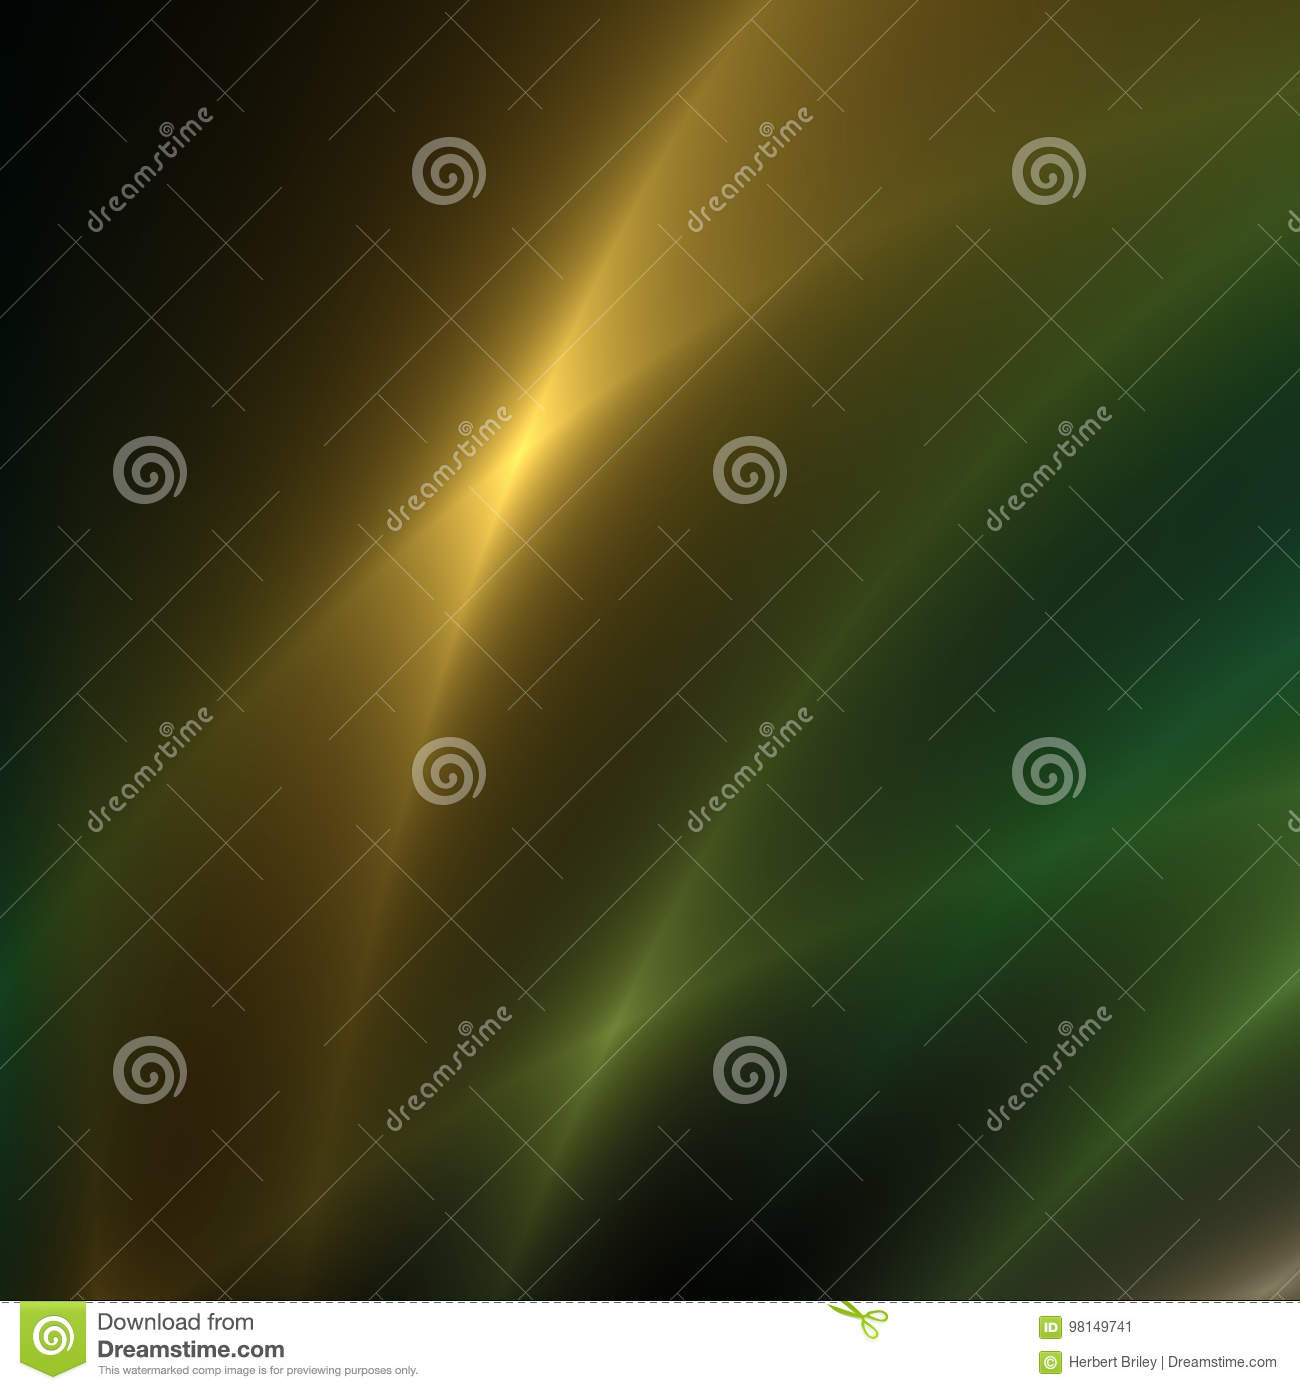 Gold and Green streaks of light